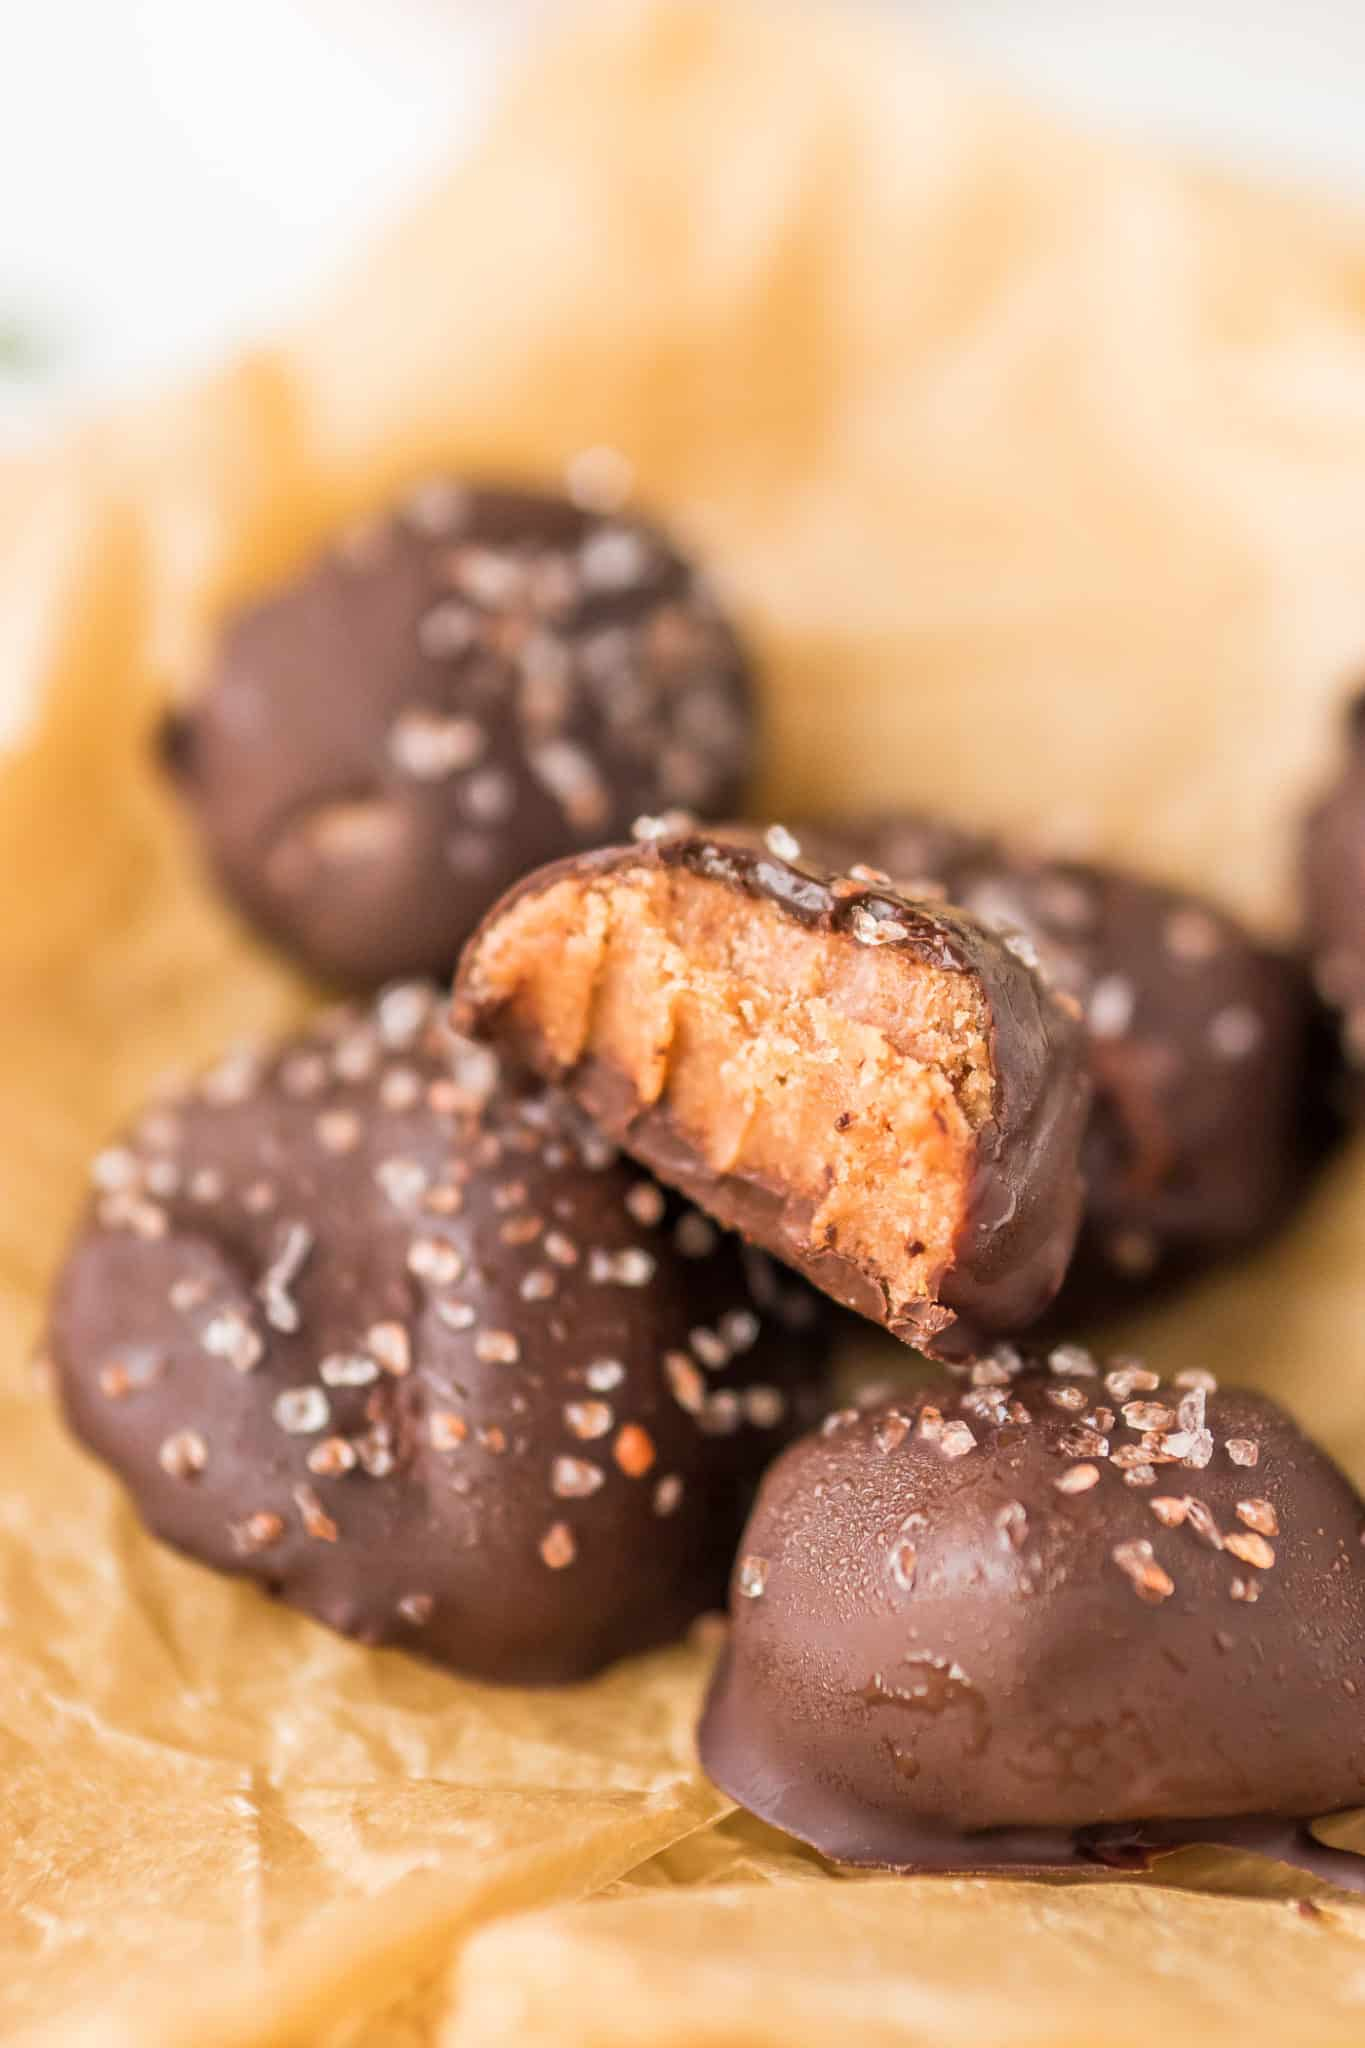 stack of chocolate tahini truffles with a bite taken out of one